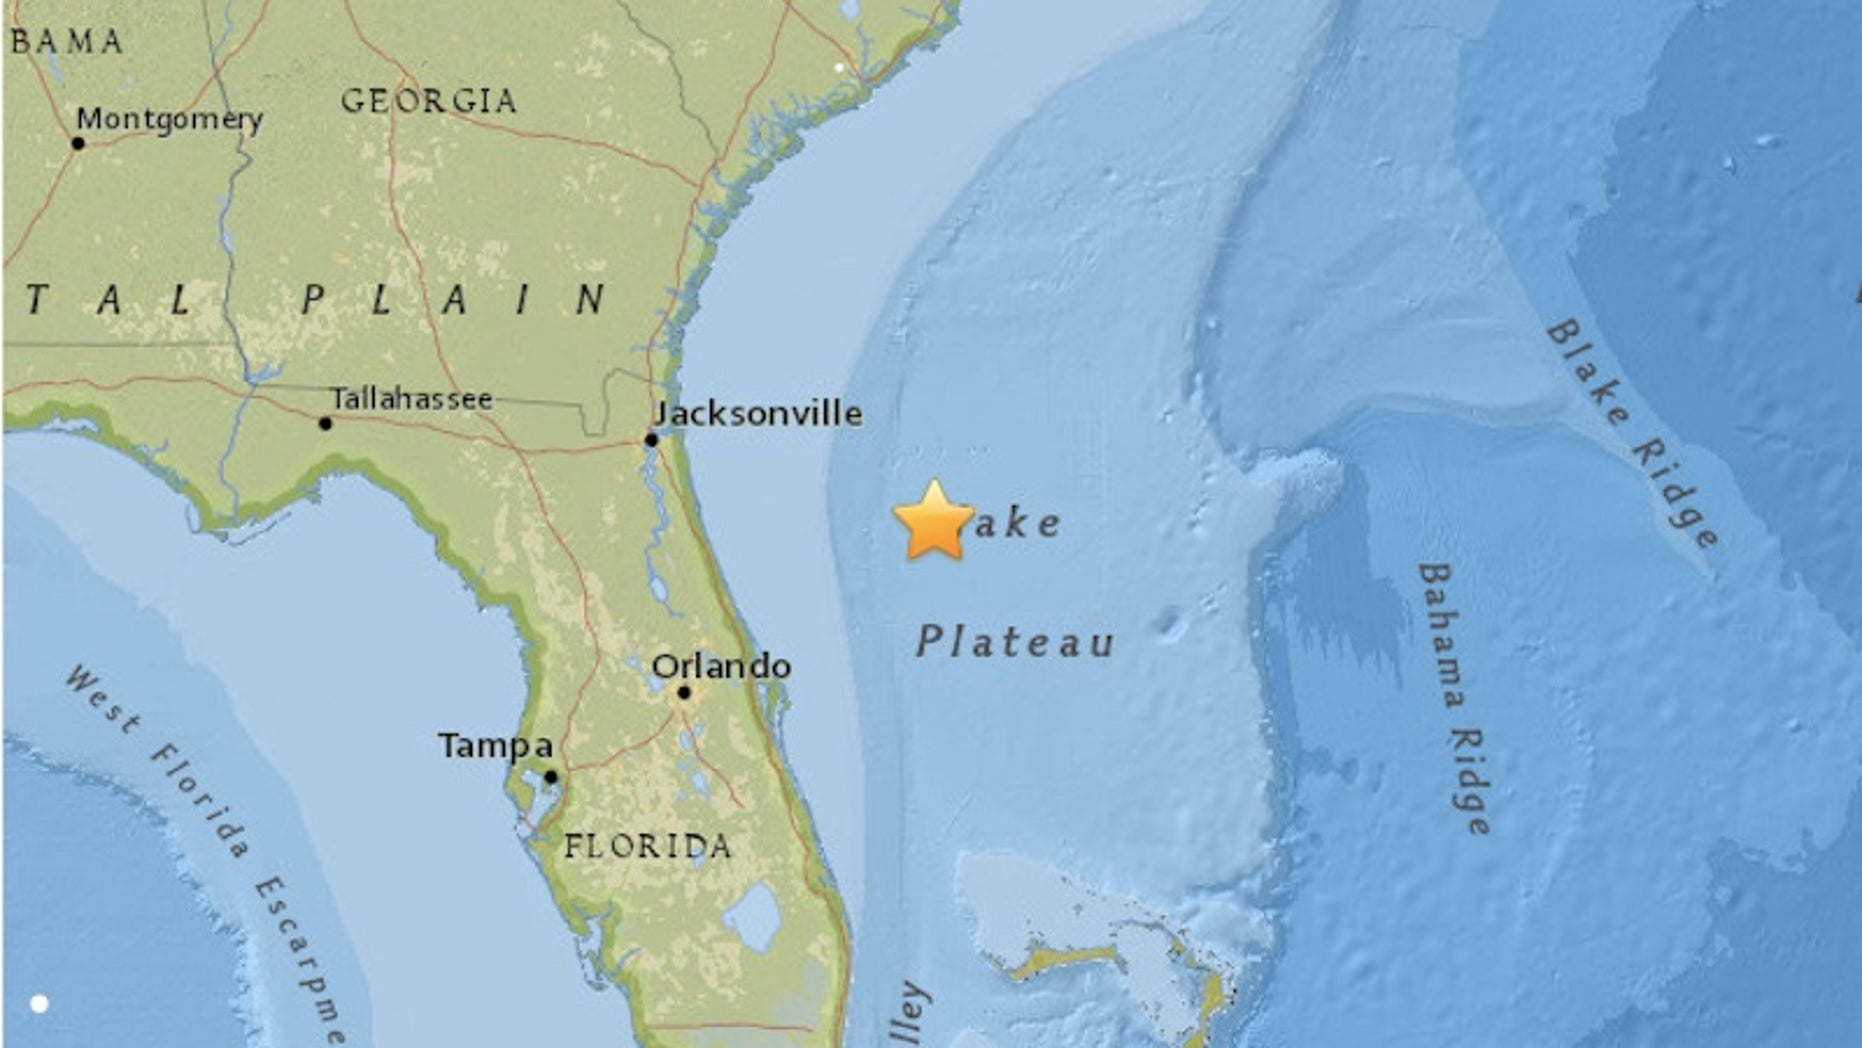 A 3.7-magnitude earthquake struck off the coast of Florida on July 16, 2016.